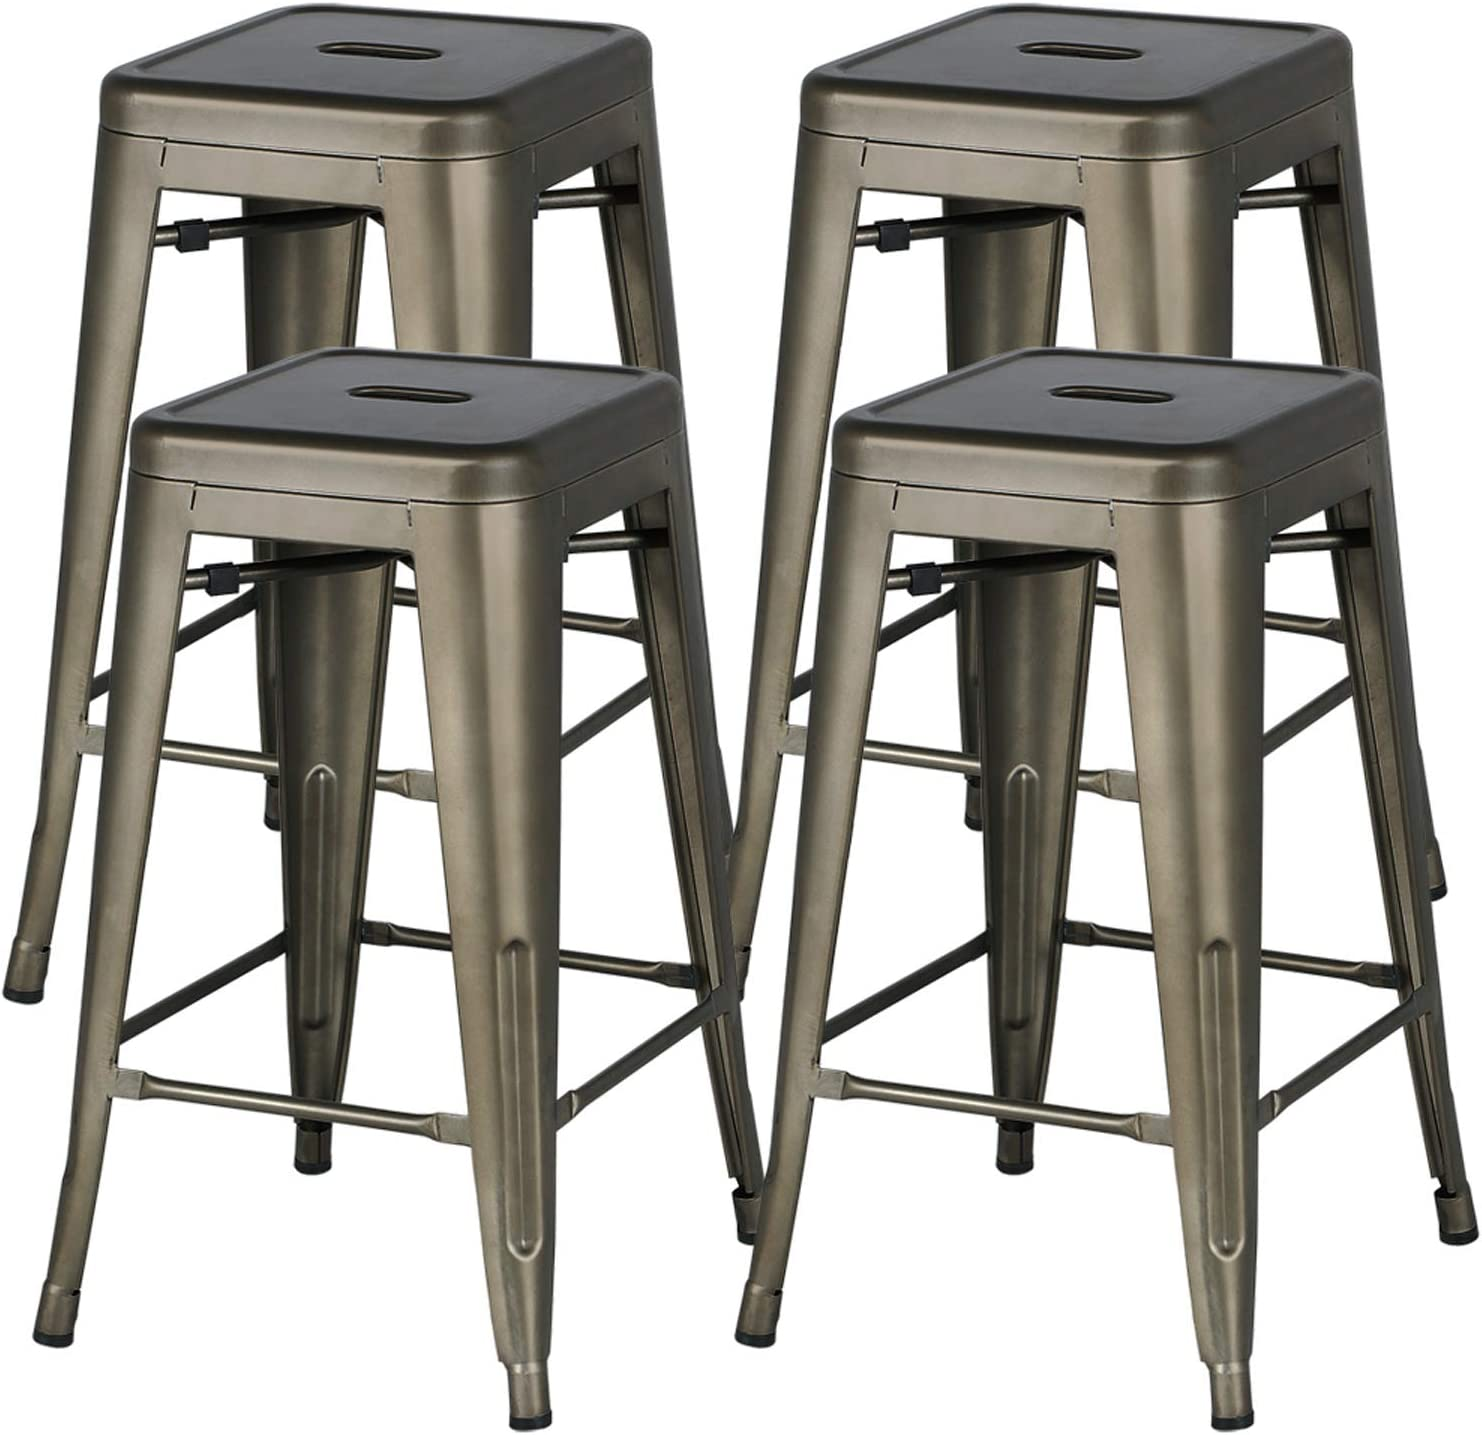 YAHEETECH 24inch Metal Bar Stools Counter Height Barstools Set of 4 High Backless Industrial Stackable Metal Chairs Indoor/Outdoor, Gun Metal: Furniture & Decor